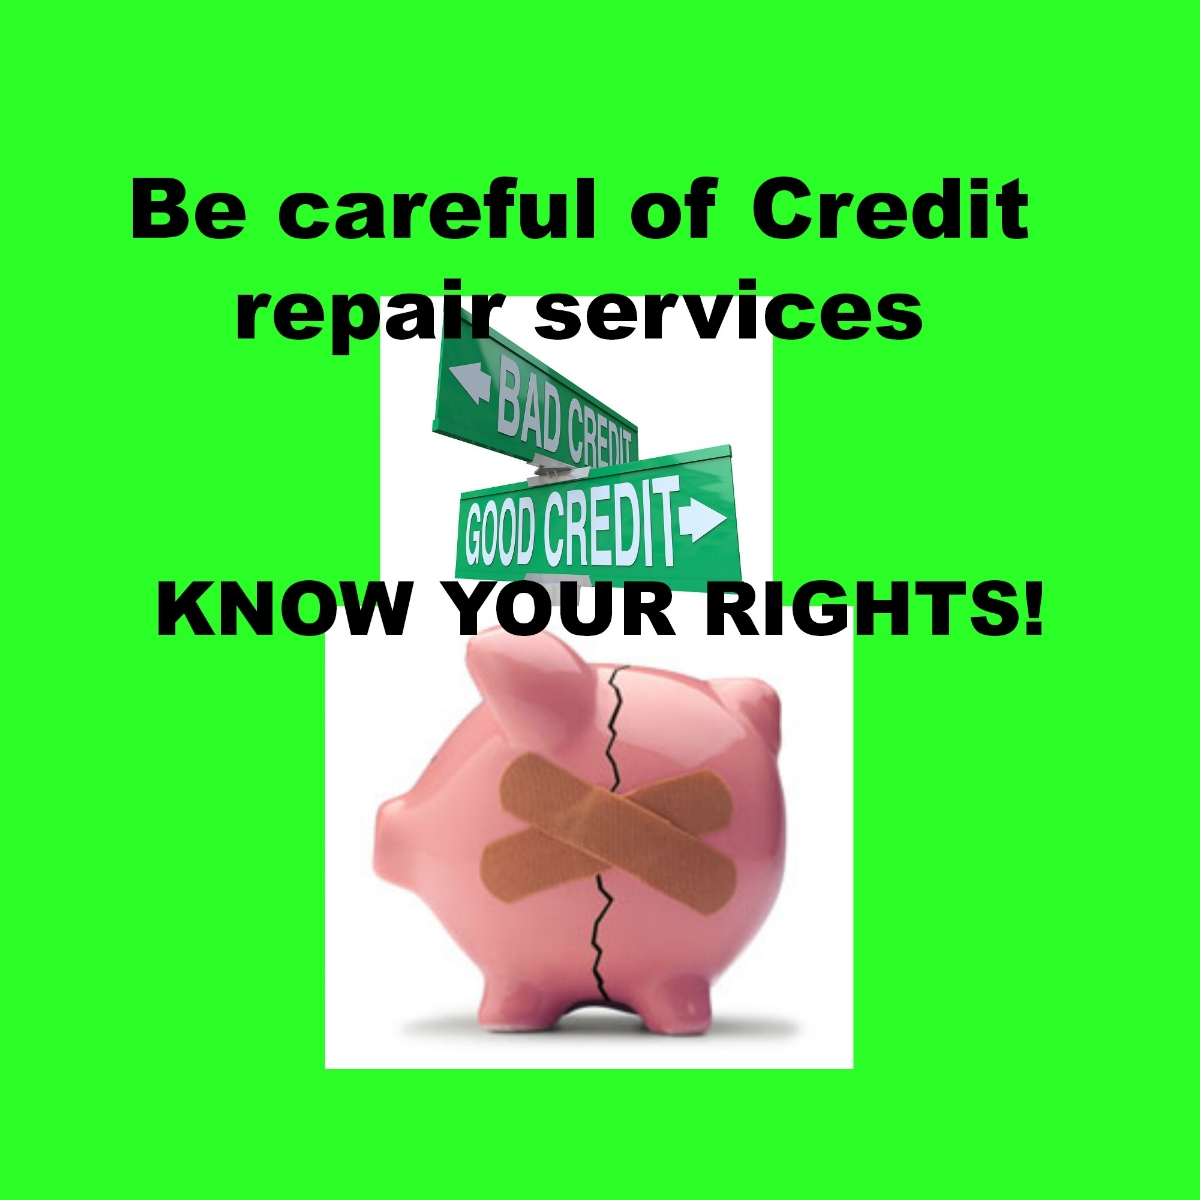 bad-credit-credit-report-secured-credit-card-secured-credit-cards-credit-repair-fix-bad-credit-how-to-fix-bad-credit.jpg